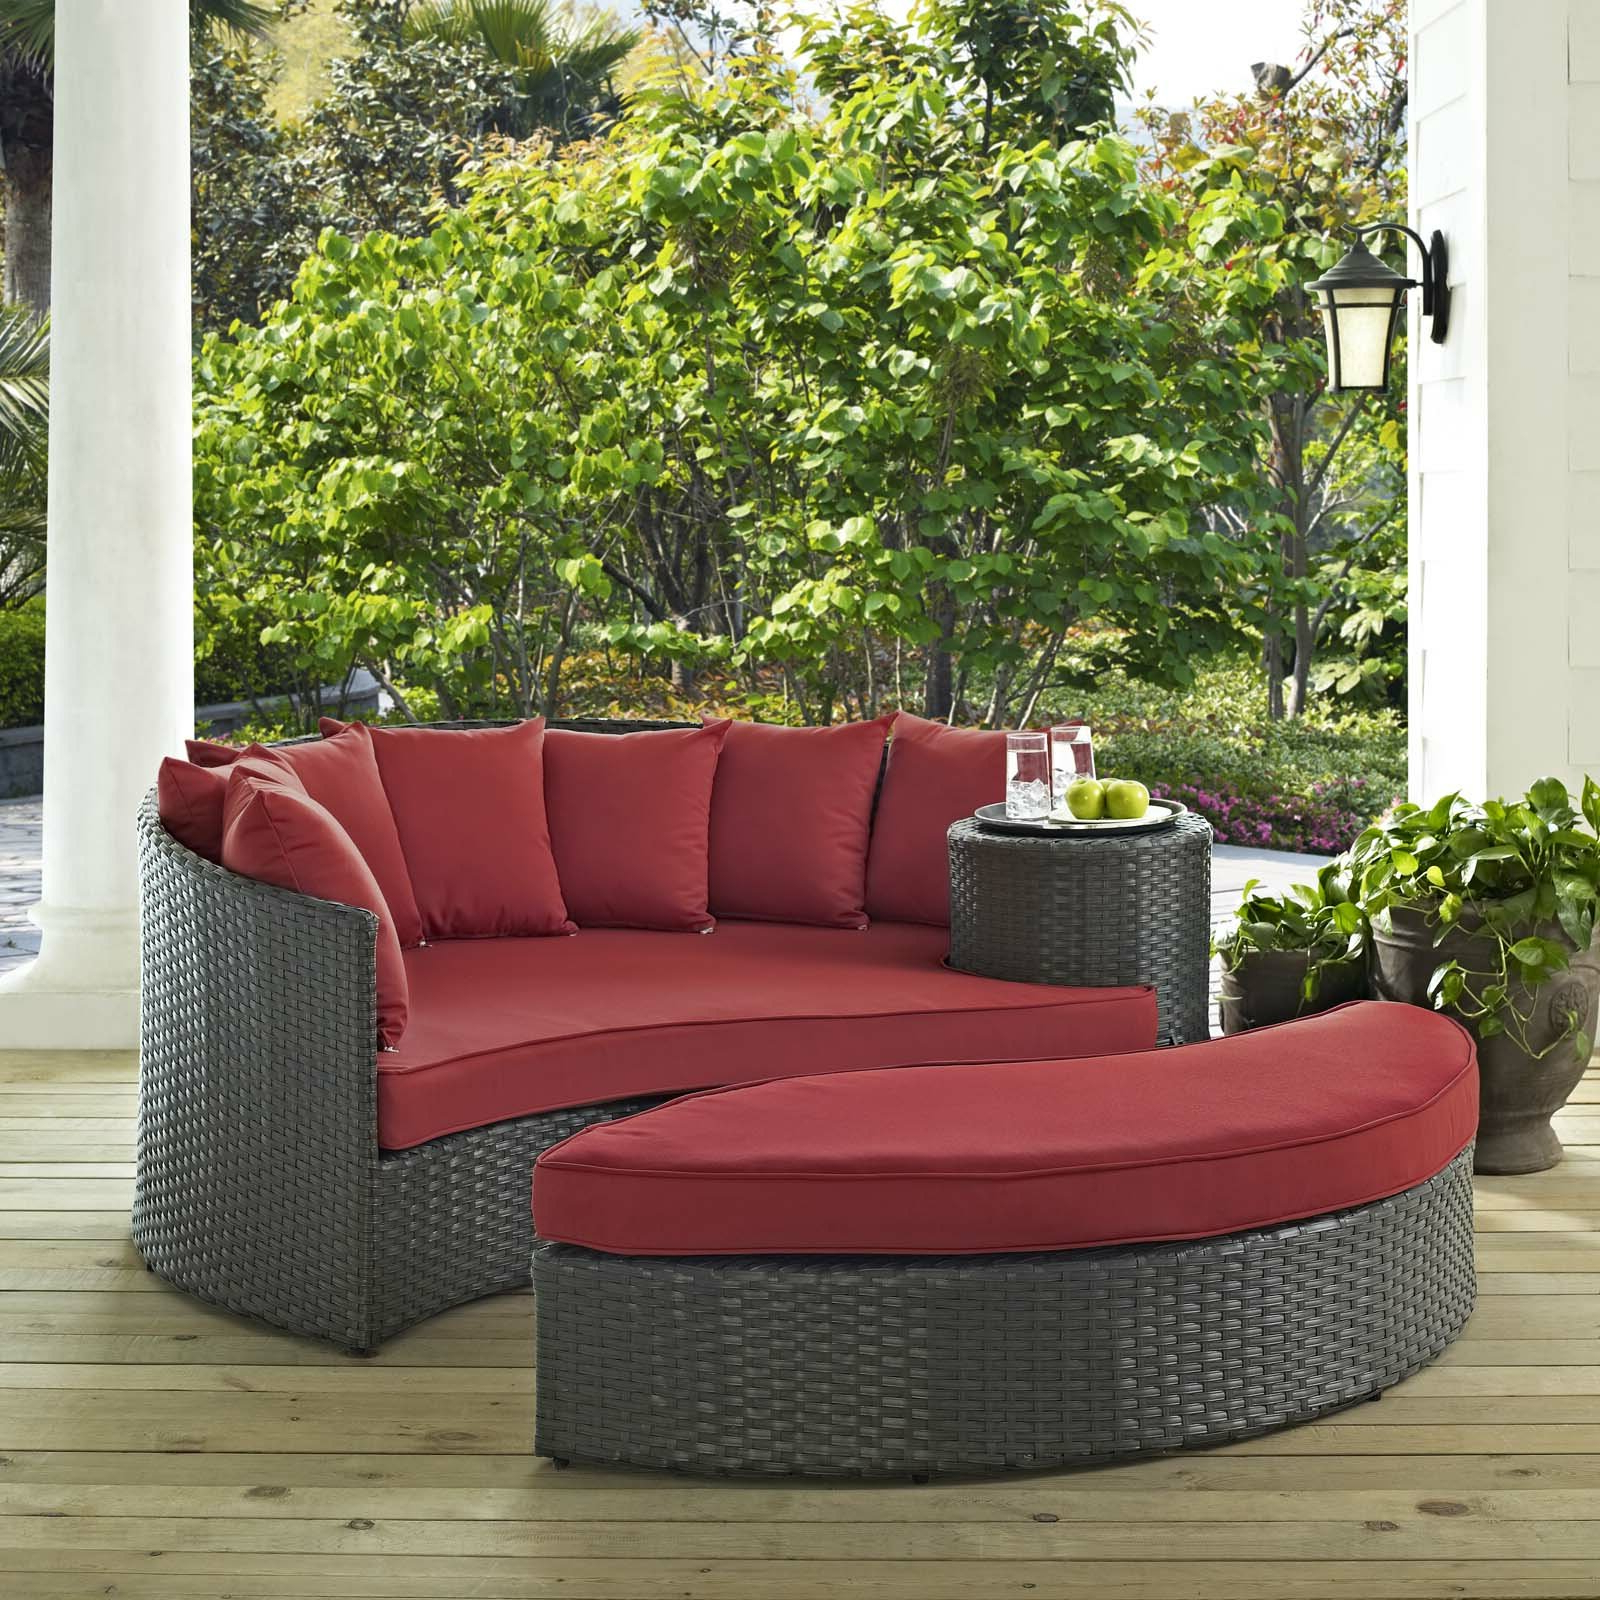 Tripp Patio Daybed With Cushions Regarding Famous Falmouth Patio Daybeds With Cushions (View 16 of 20)